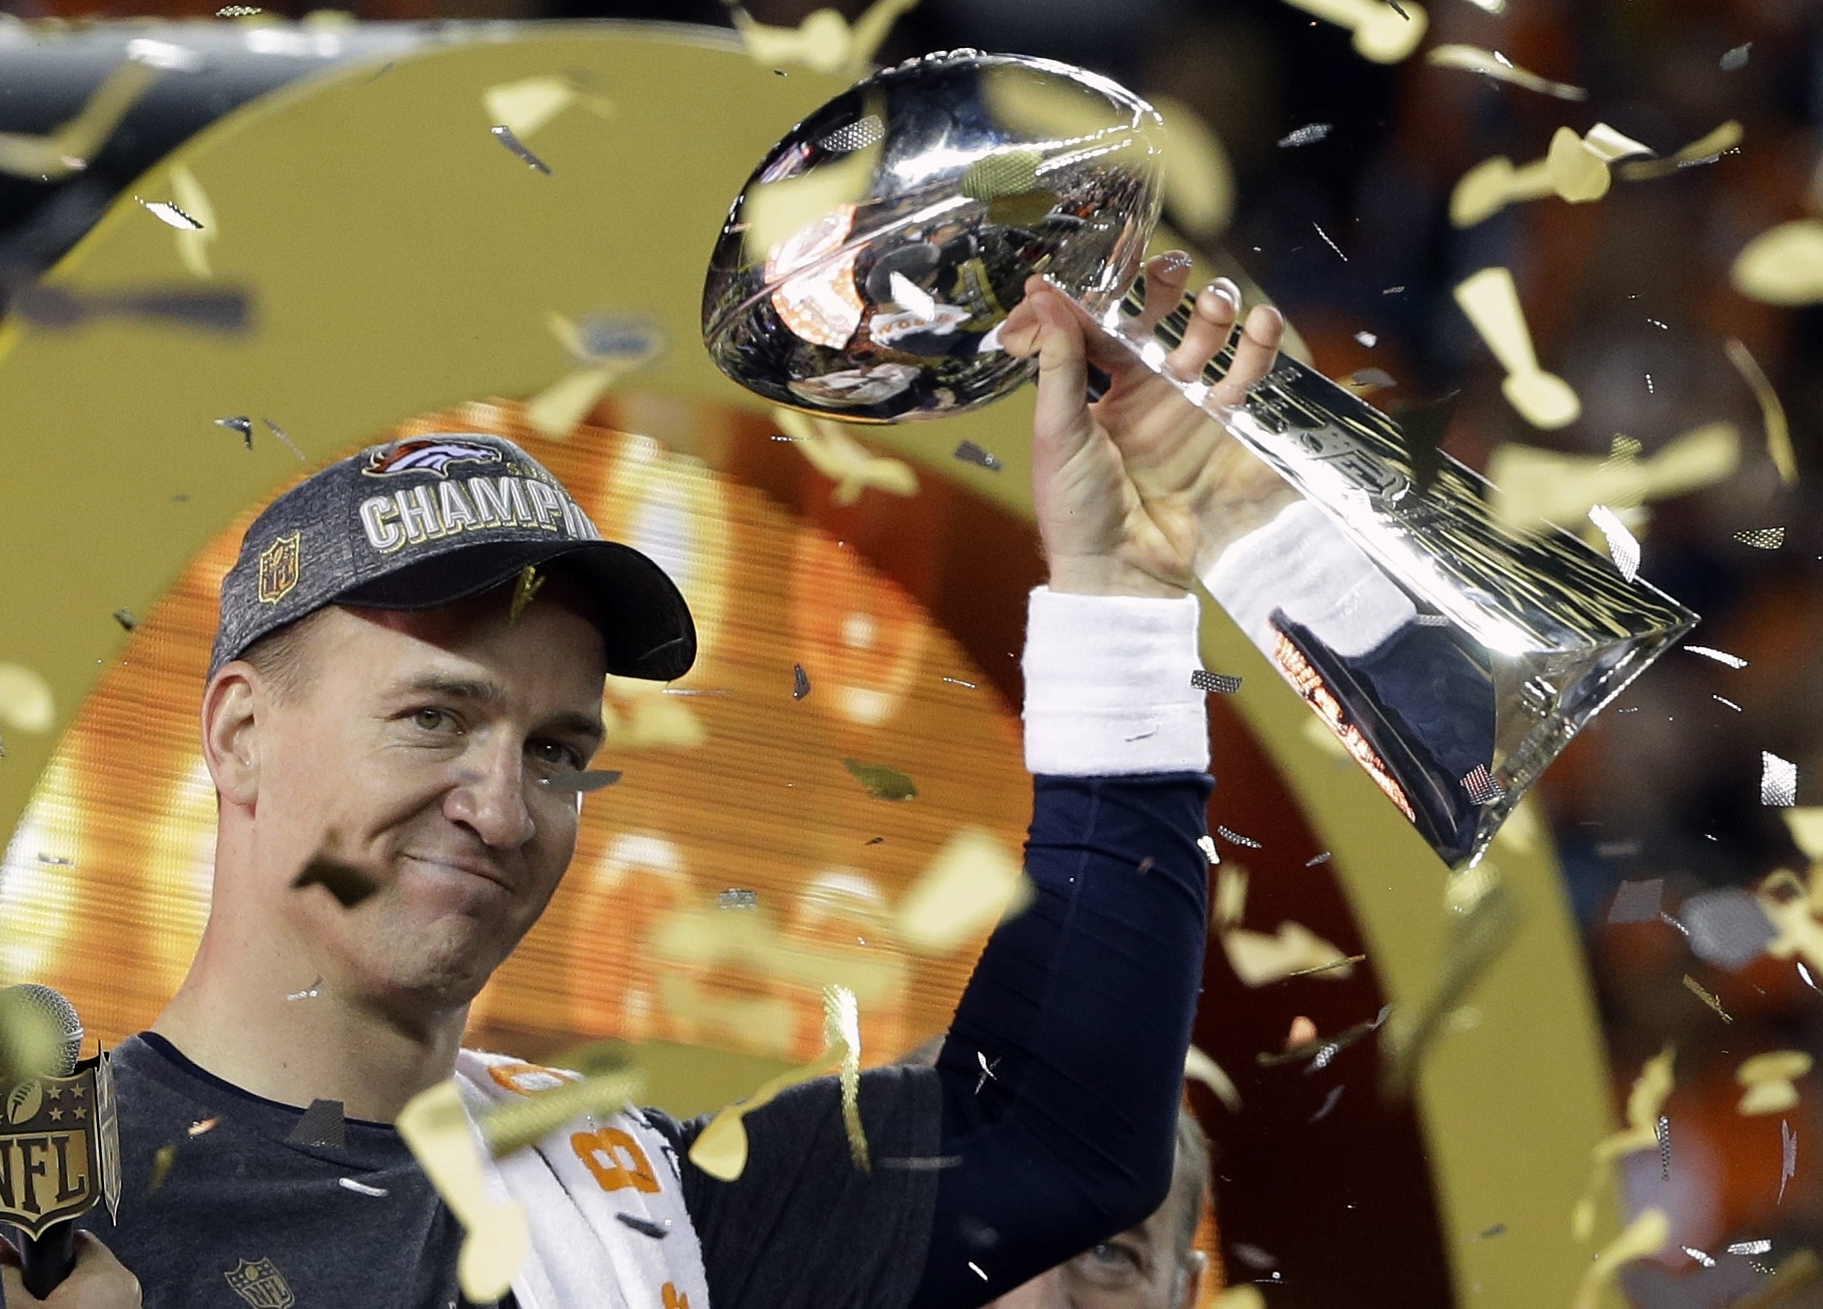 Photo: Denver Broncos' Peyton Manning holds the Lombardi Trophy, Siper Bowl 50 (AP1)